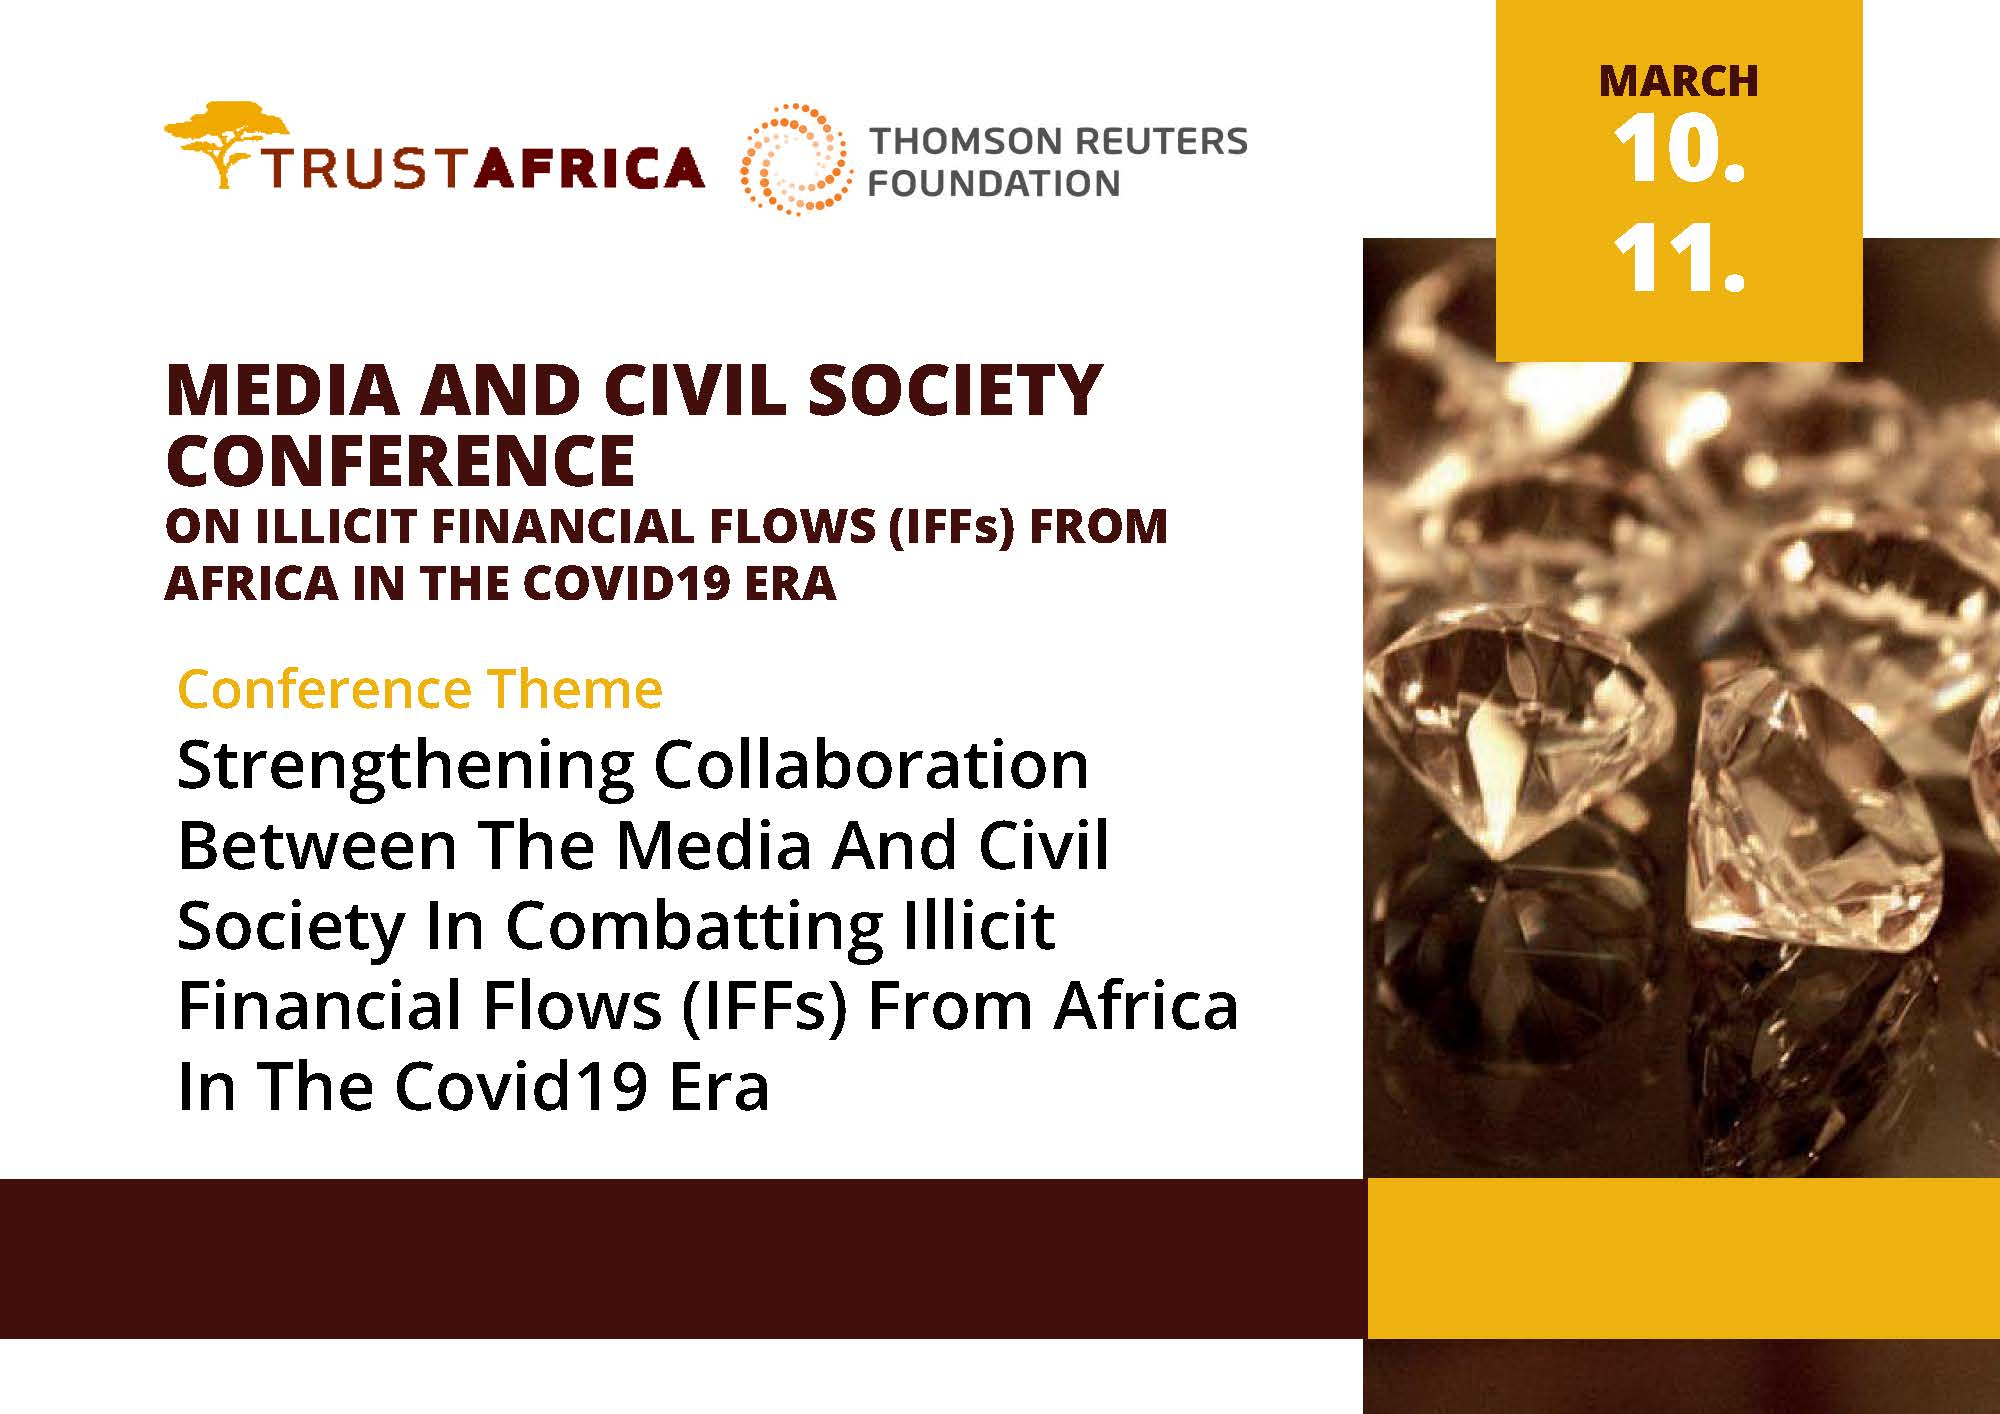 MEDIA AND CIVIL SOCIETY CONFERENCE ON ILLICIT FINANCIAL FLOWS (IFFS)  FROM AFRICA IN THE COVID19 ERA